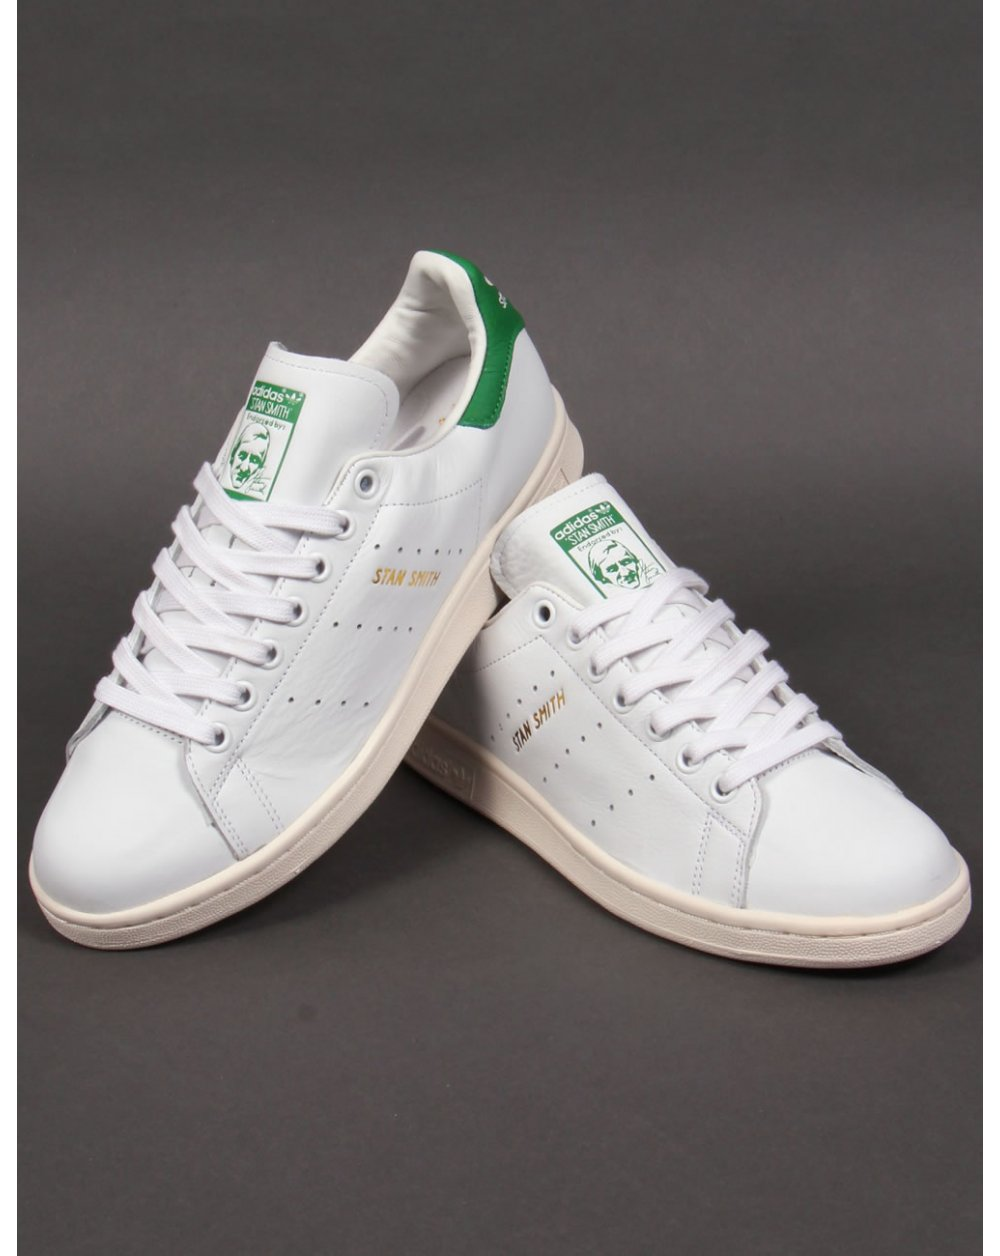 adidas stan smith trainers white green gold originals. Black Bedroom Furniture Sets. Home Design Ideas